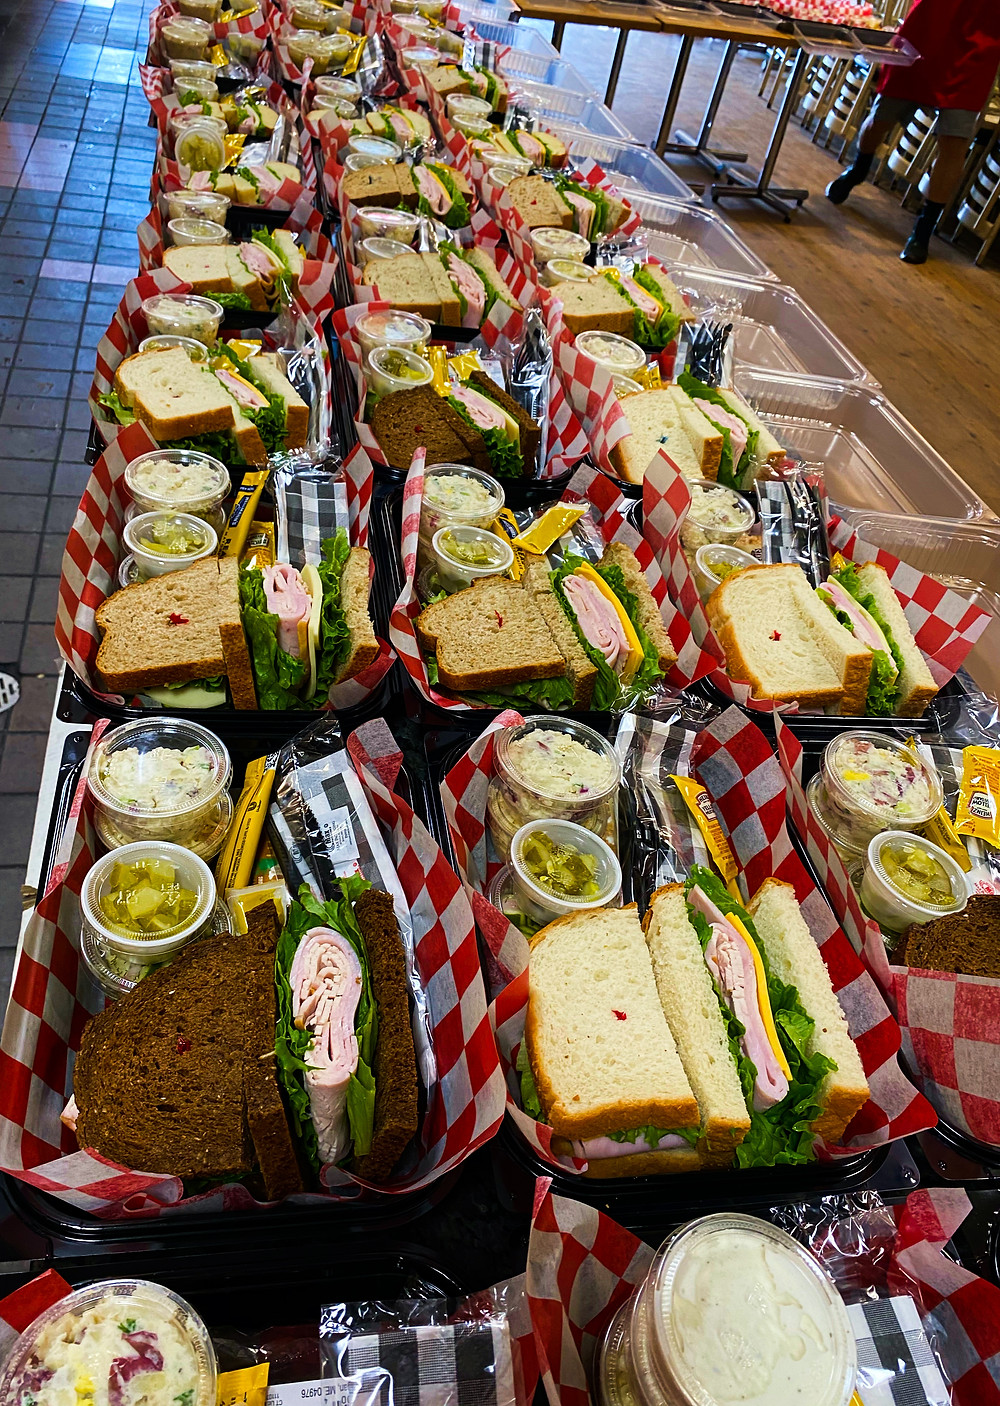 Boxed lunches waiting for the last touch of love before being sent out